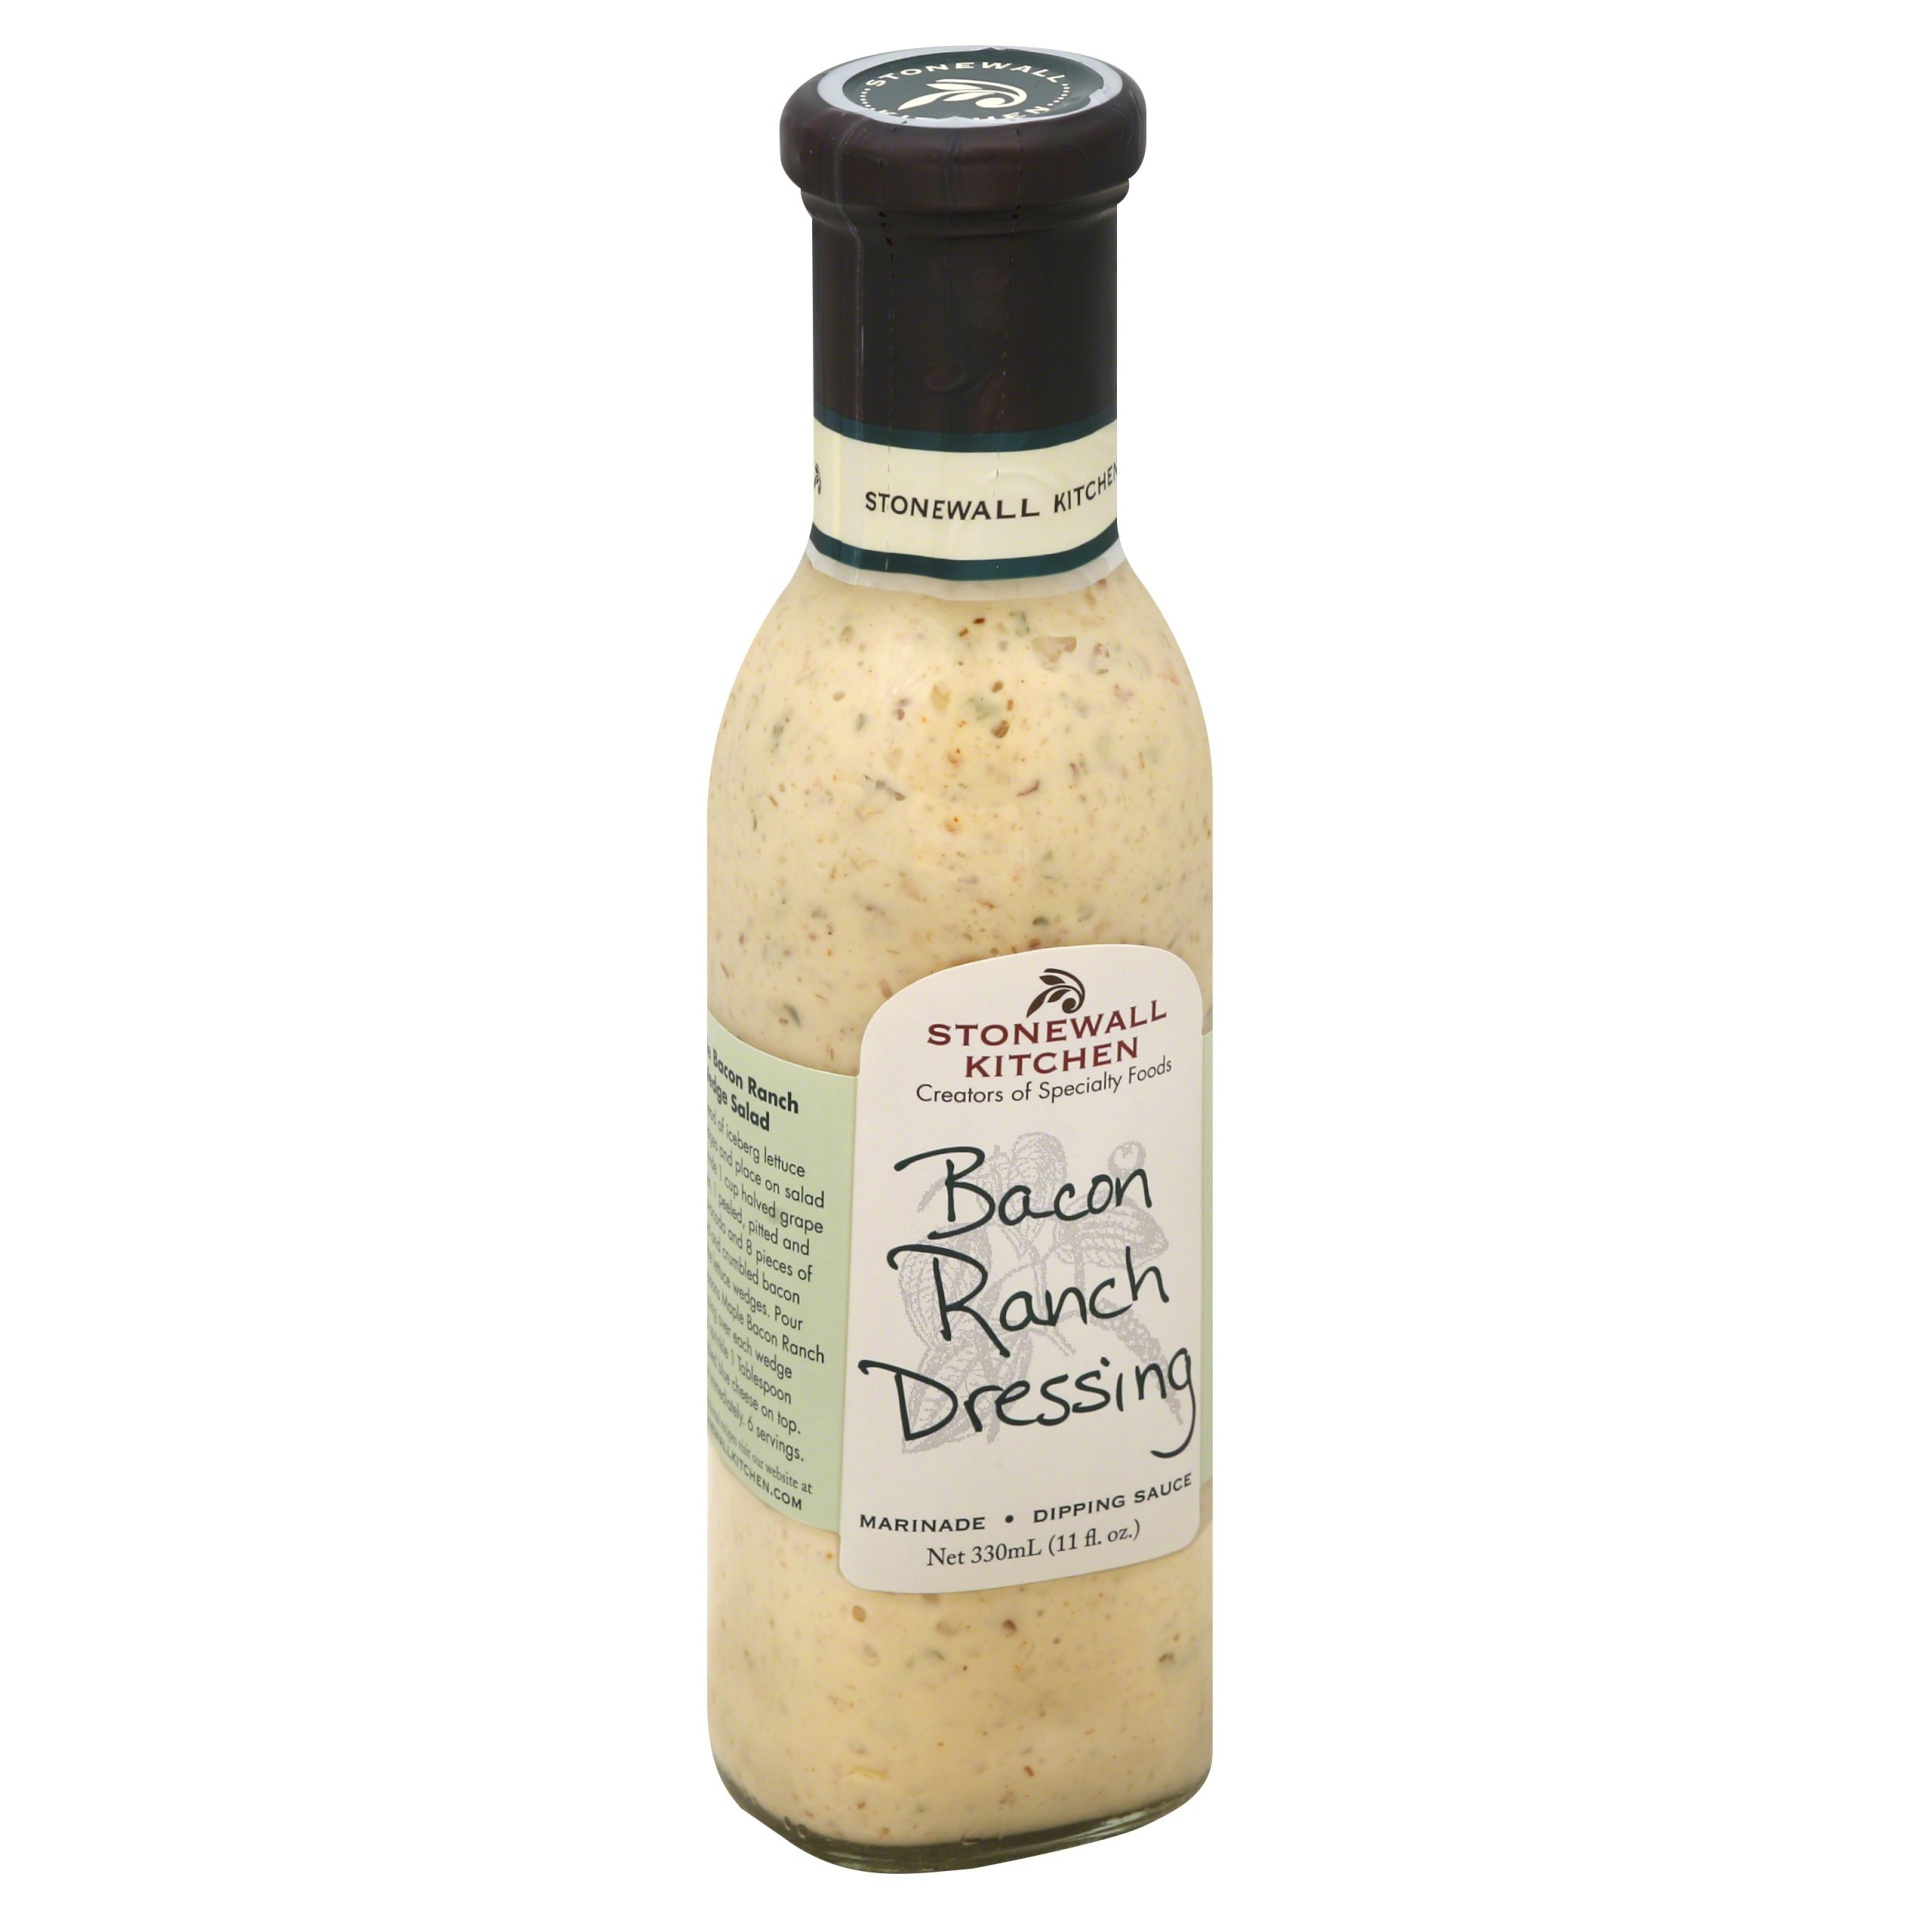 slide 1 of 2, Stonewall Kitchen Bacon Ranch Dressing,